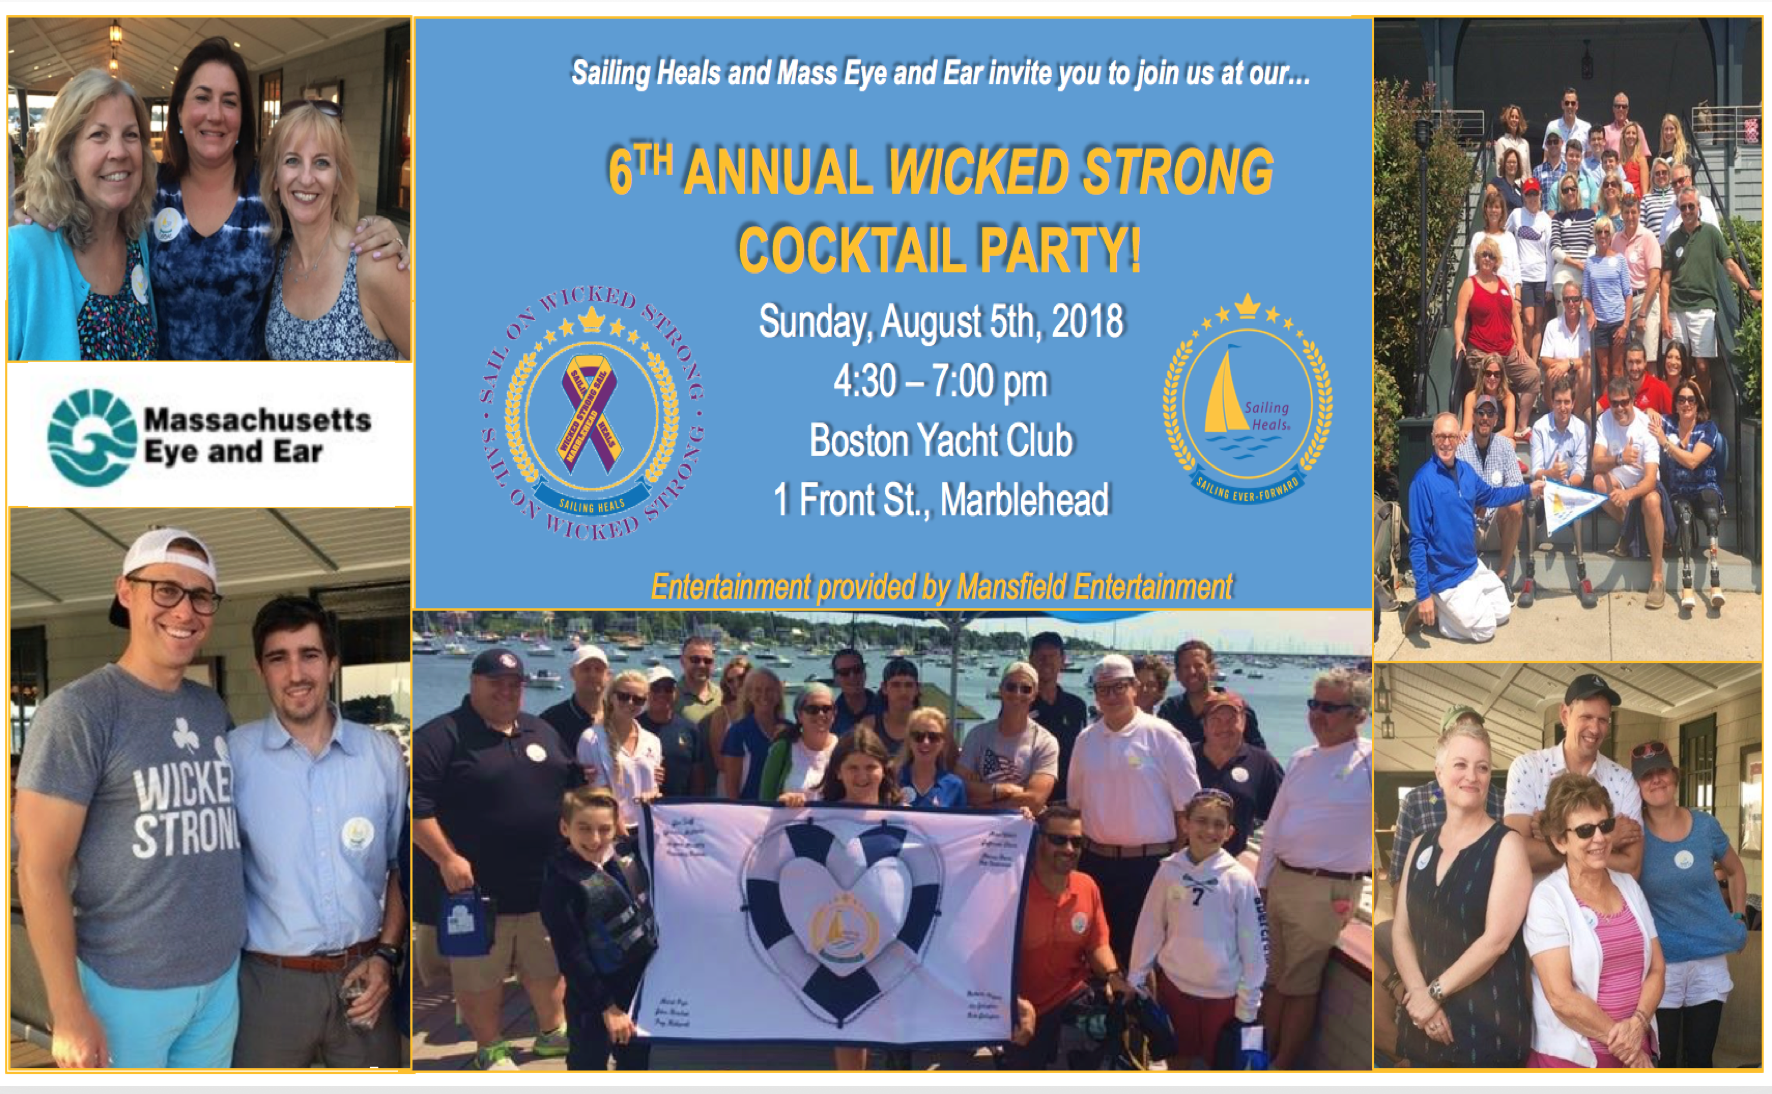 8/5/18 – 6th Annual Wicked Strong Cocktail Party